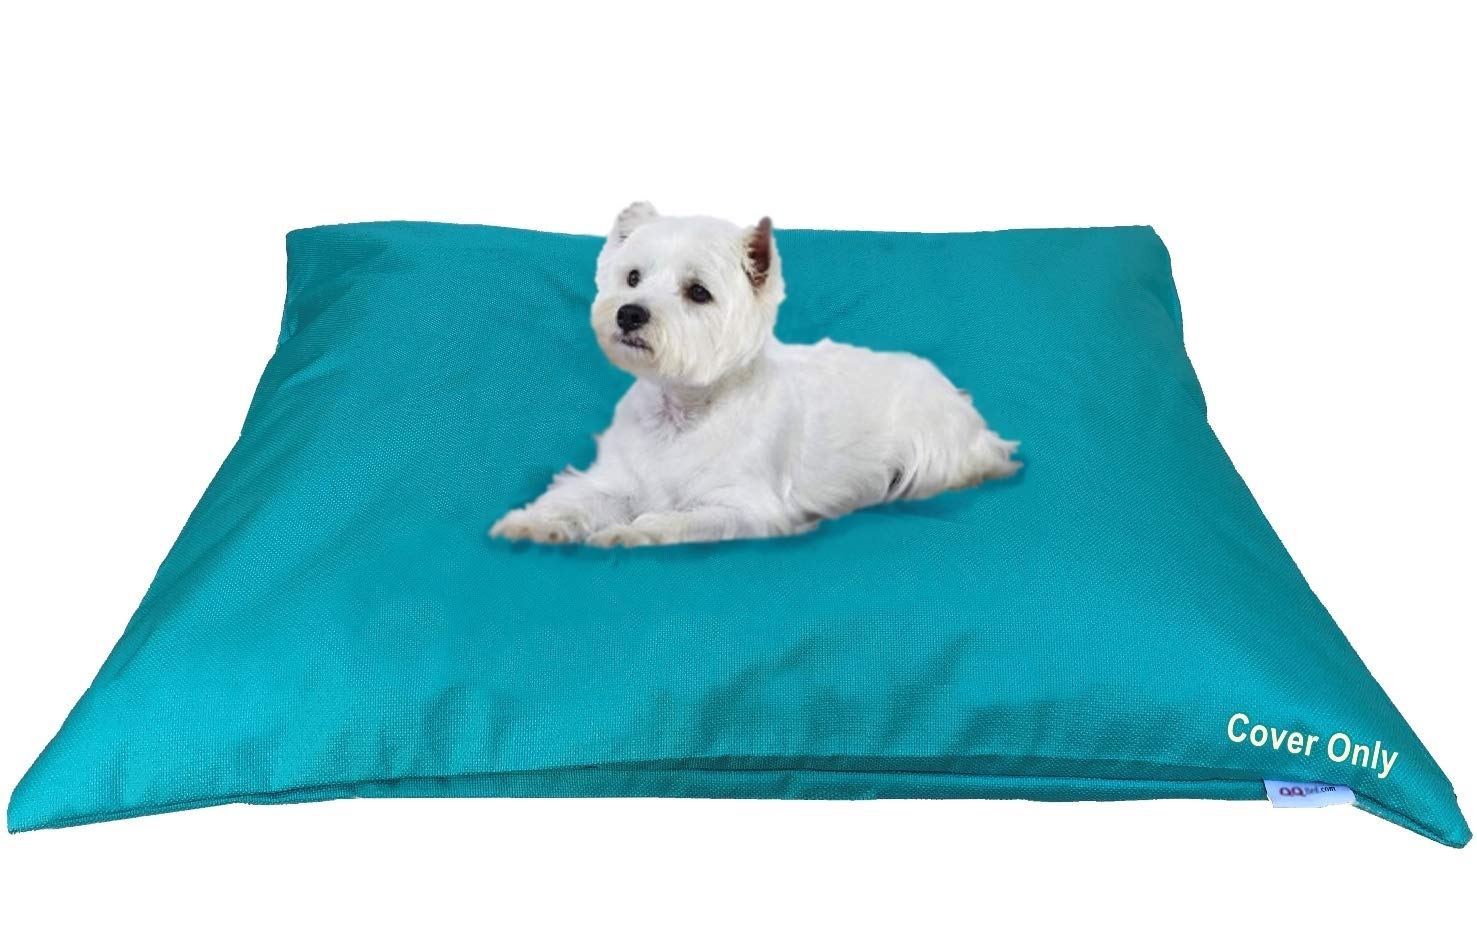 Do It Yourself DIY Pet Bed Pillow Duvet Waterproof Cover for Dog or Cat in Medium 37''X29'' Vibrant Peacock Blue Color - Cover only